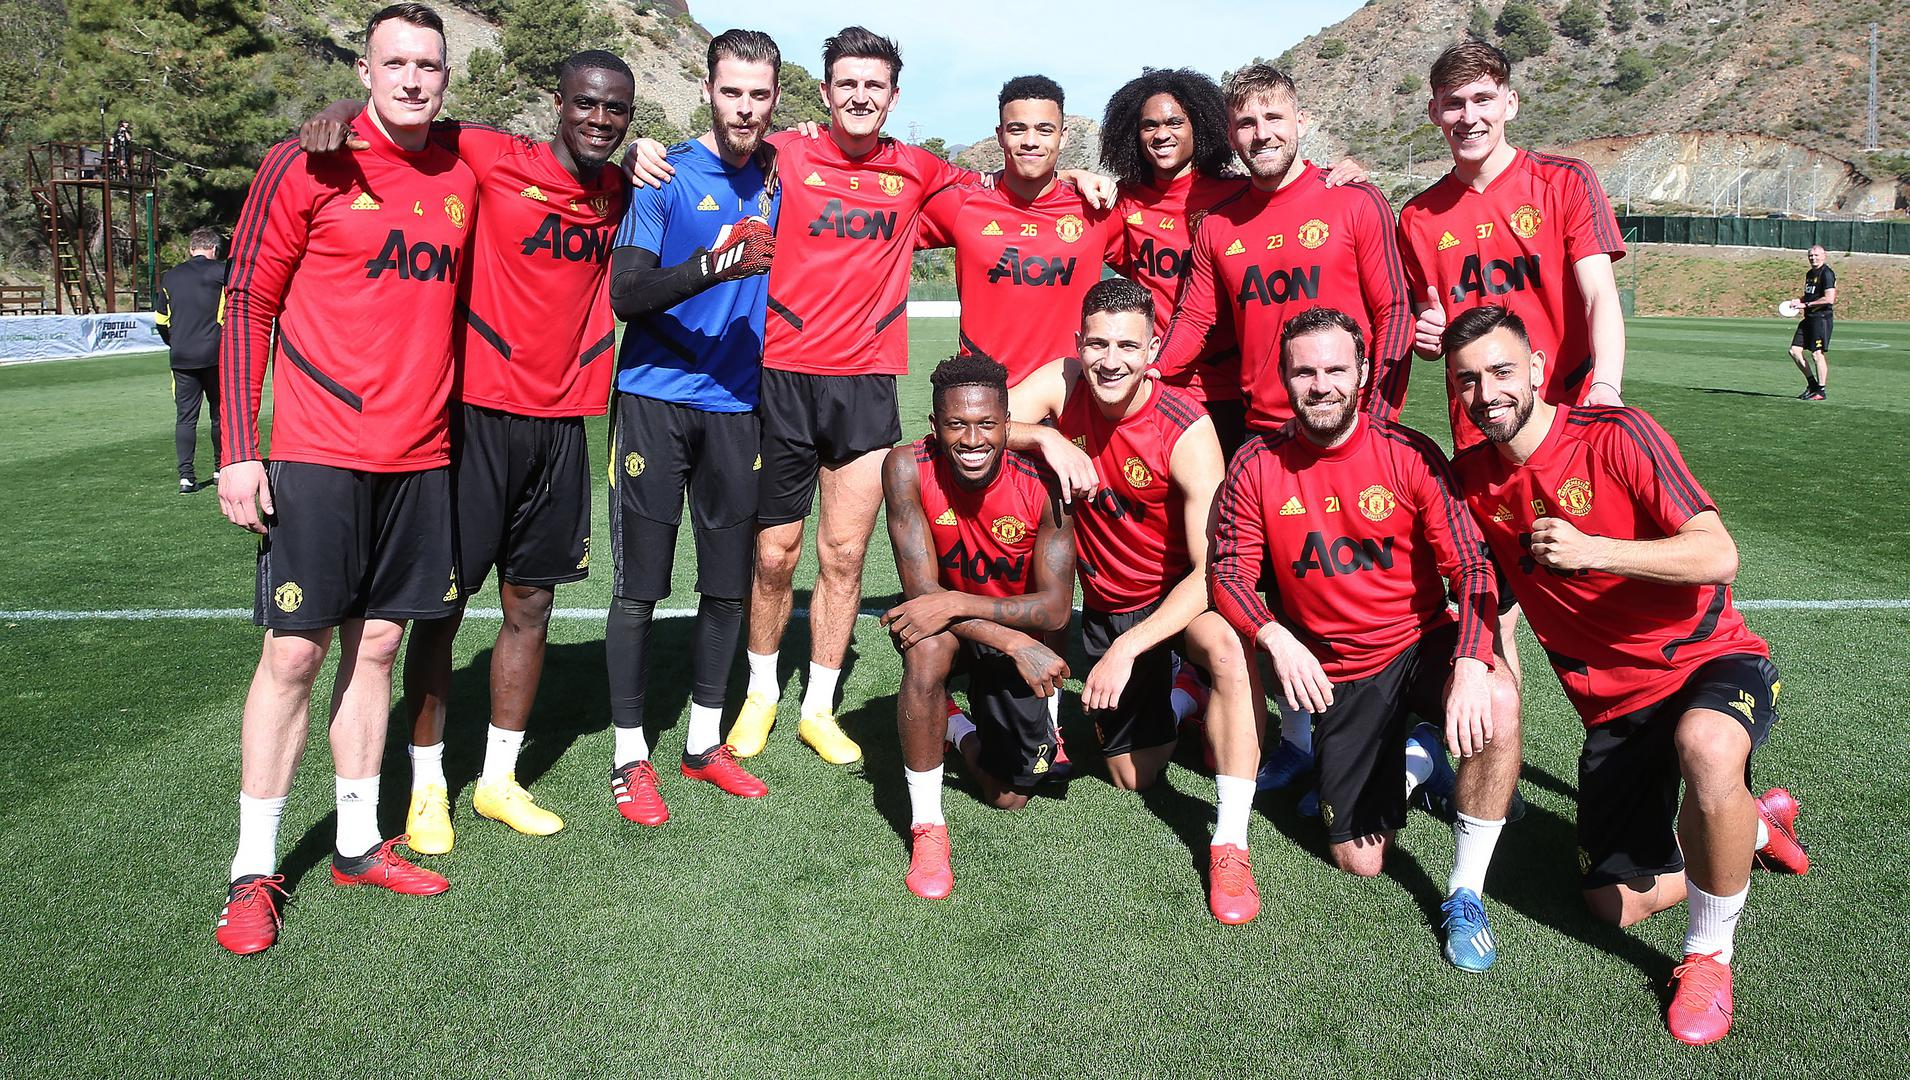 Jones, Bailly, De Gea, Maguire, Greenwood, Chong, Shaw, Garner, Fred, Dalot, Mata and Bruno Fernandes training in Marbella